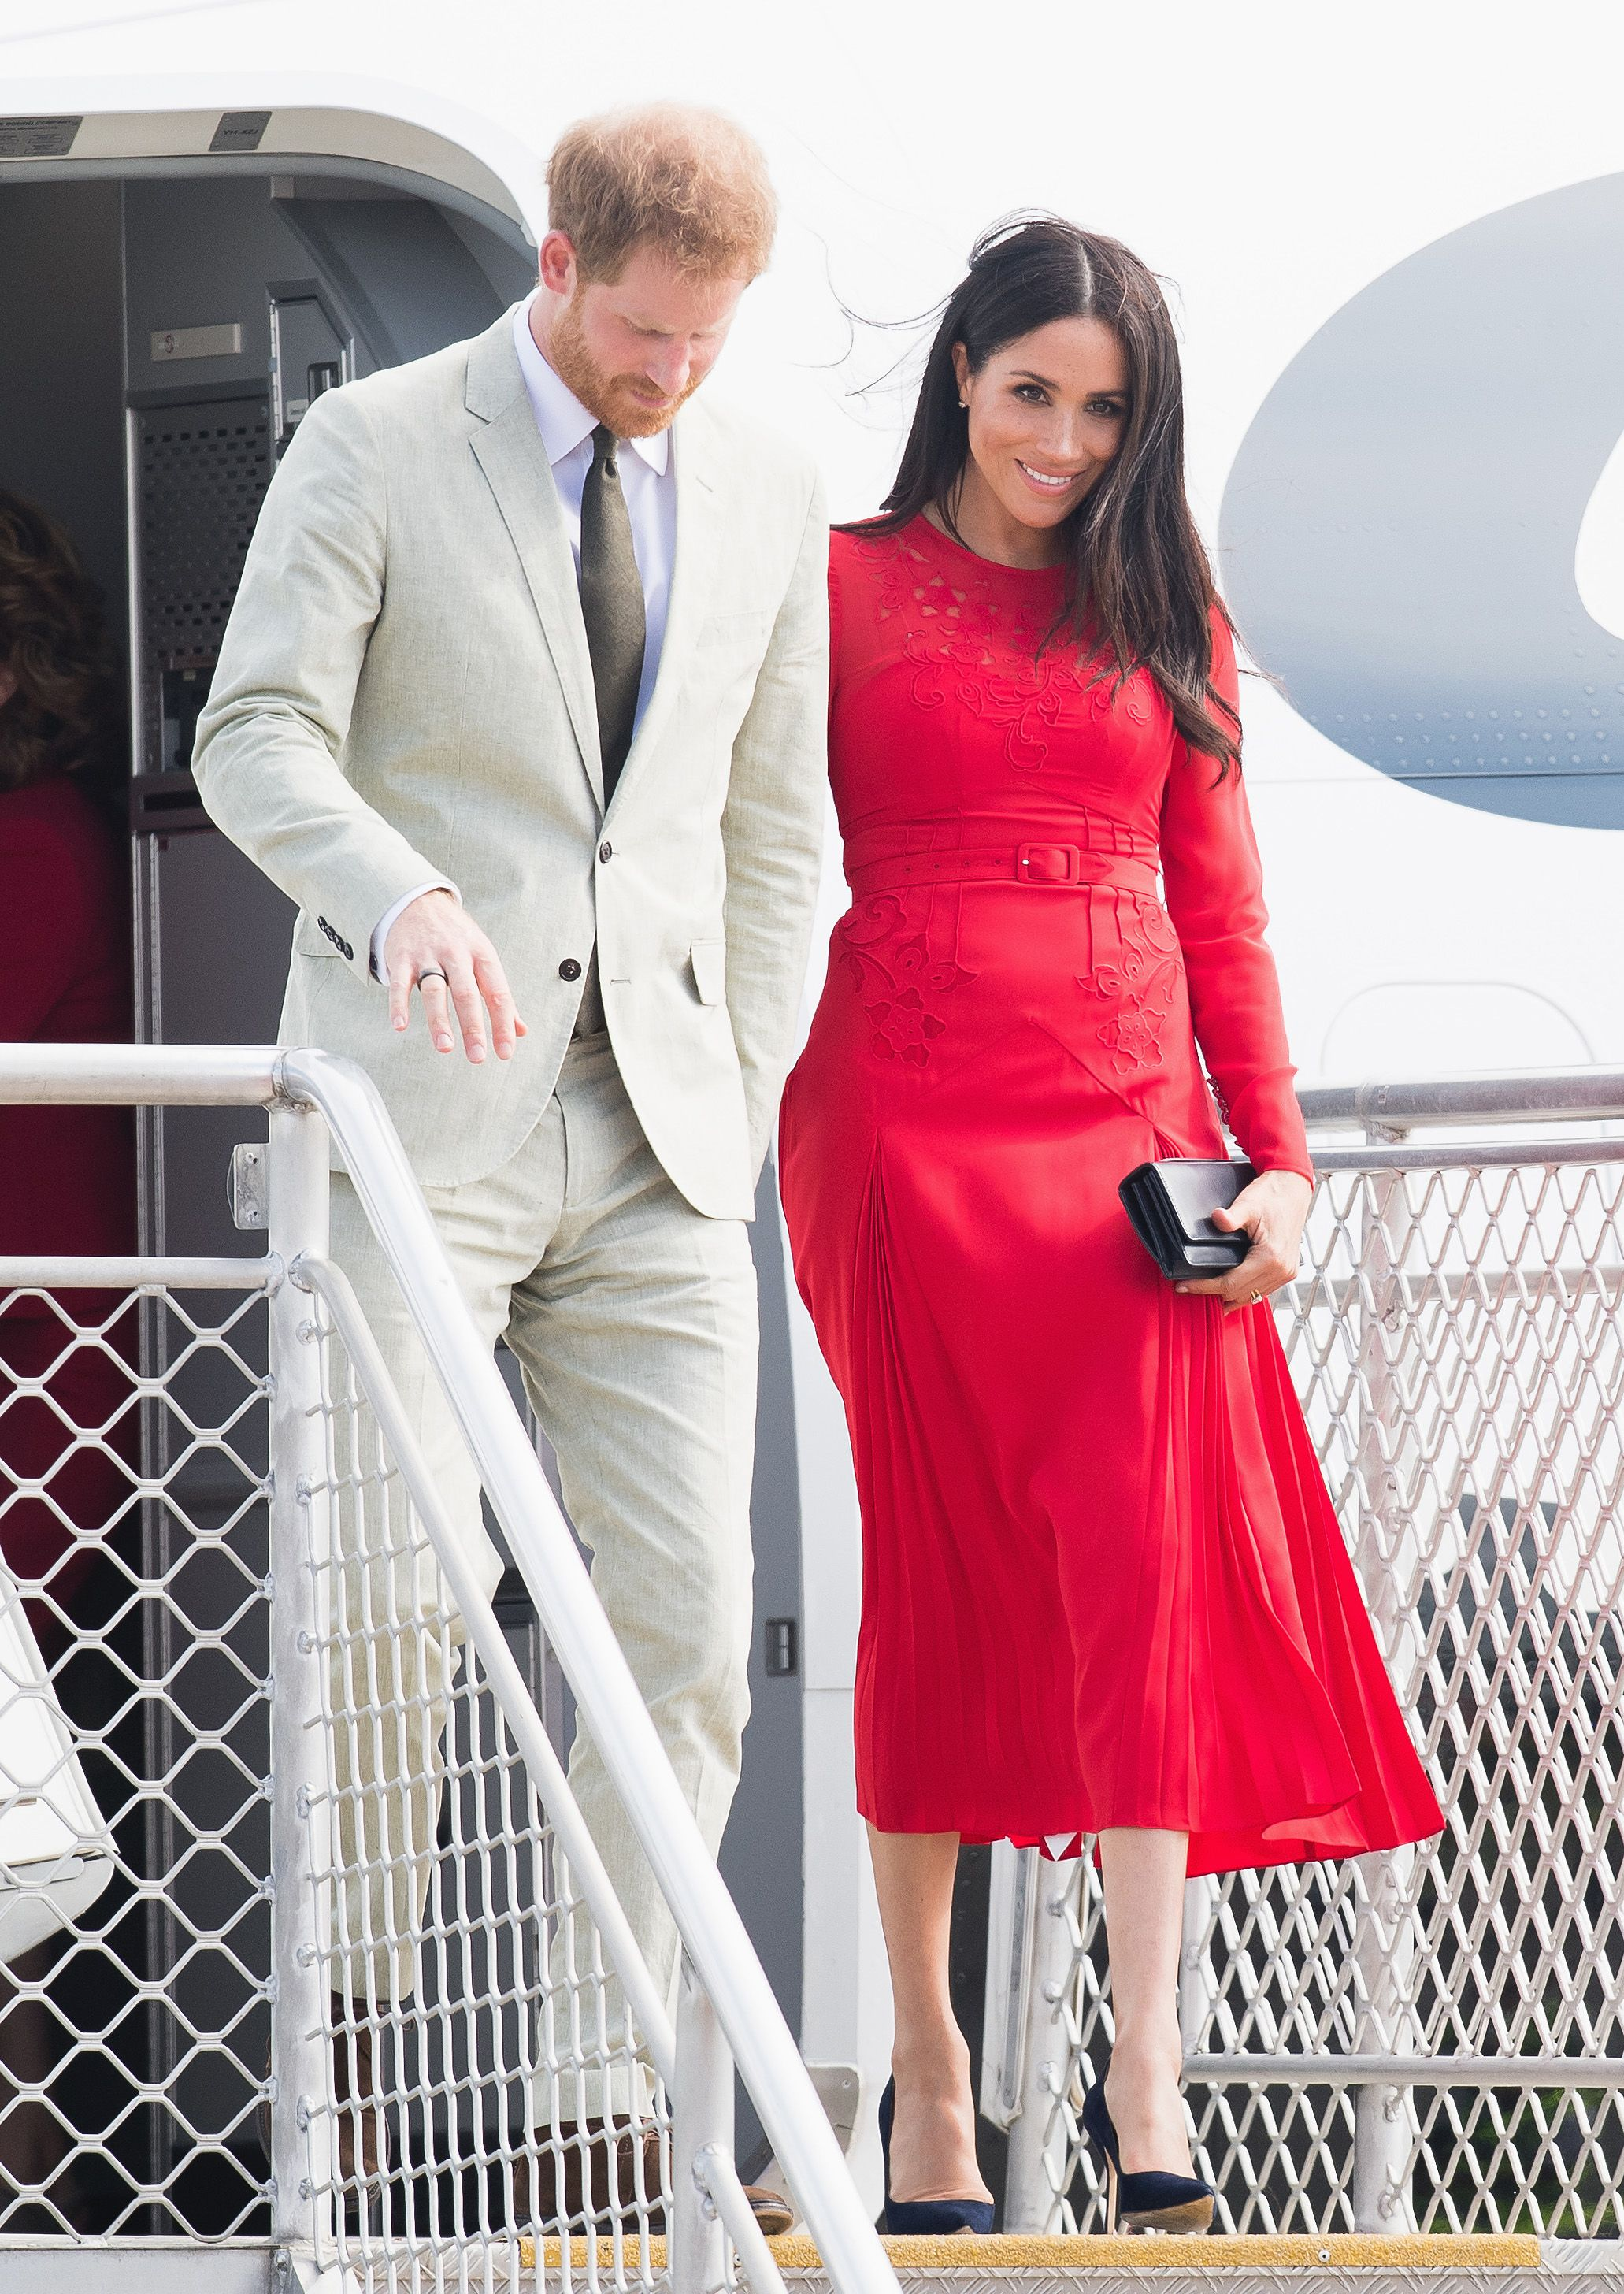 76640f3d7ce9 Meghan Markle Wears Red Self-Portrait Dress for Her and Prince Harry's  Tonga Arrival During Royal Tour